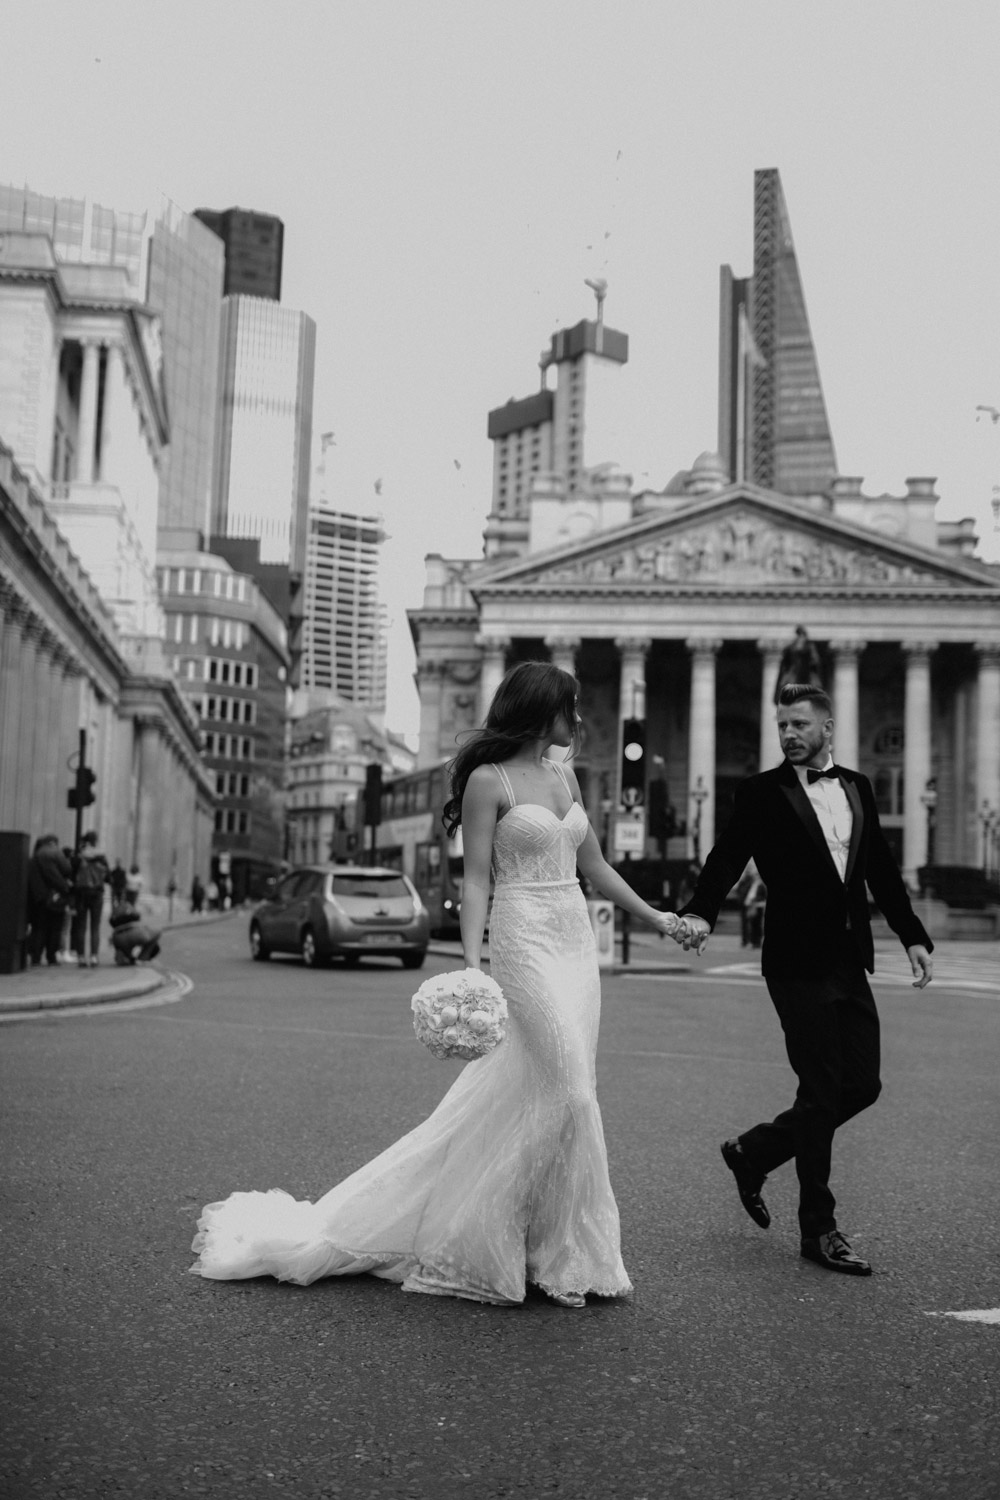 bride wearing a berta wedding dress in London